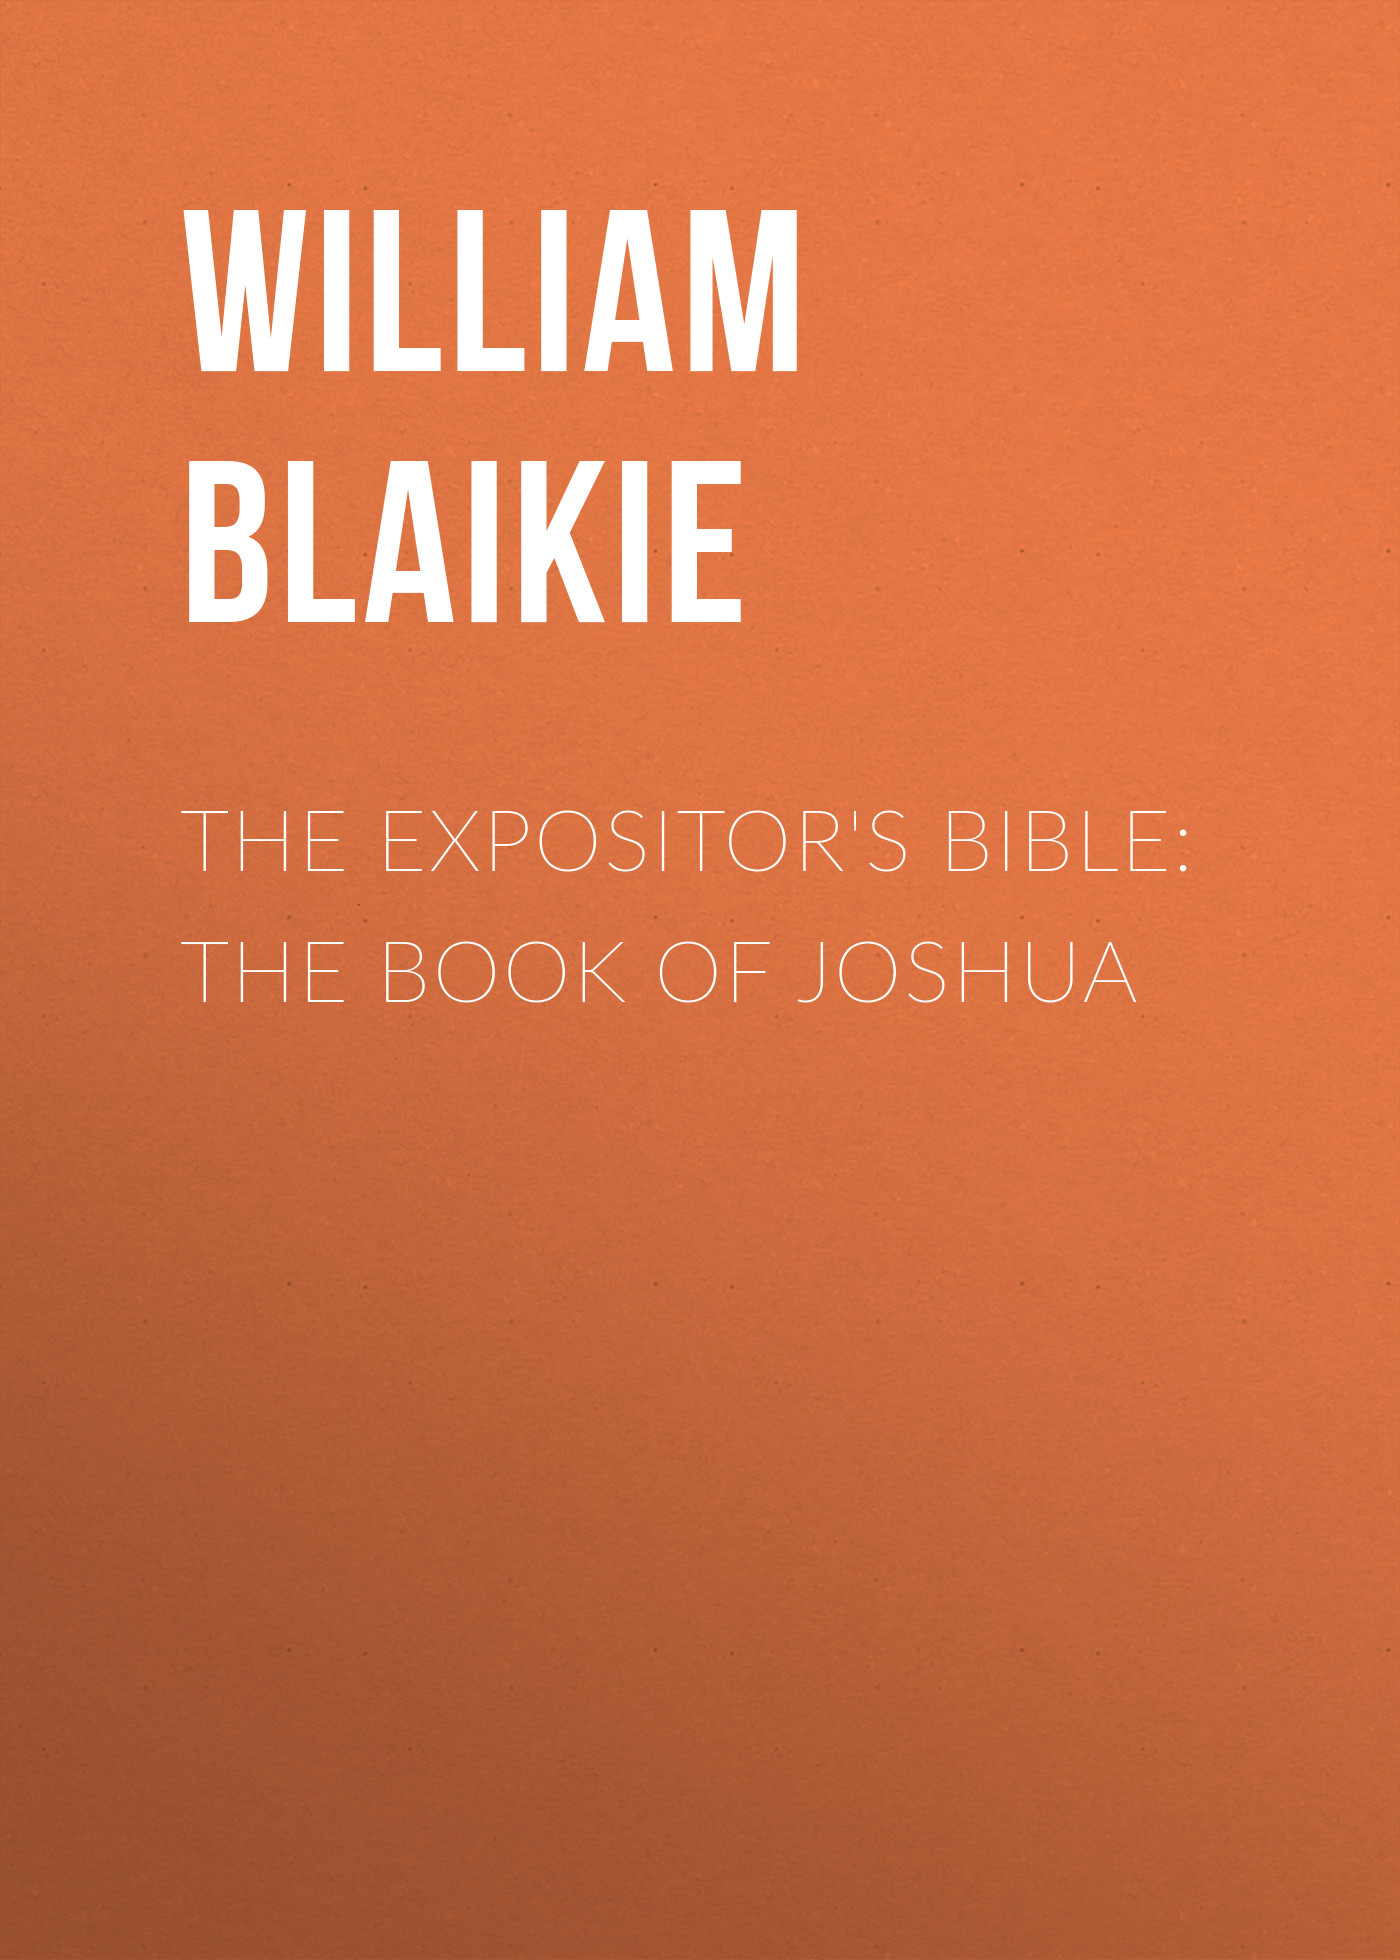 William Garden Blaikie The Expositor's Bible: The Book of Joshua bennett william henry the expositor s bible the books of chronicles